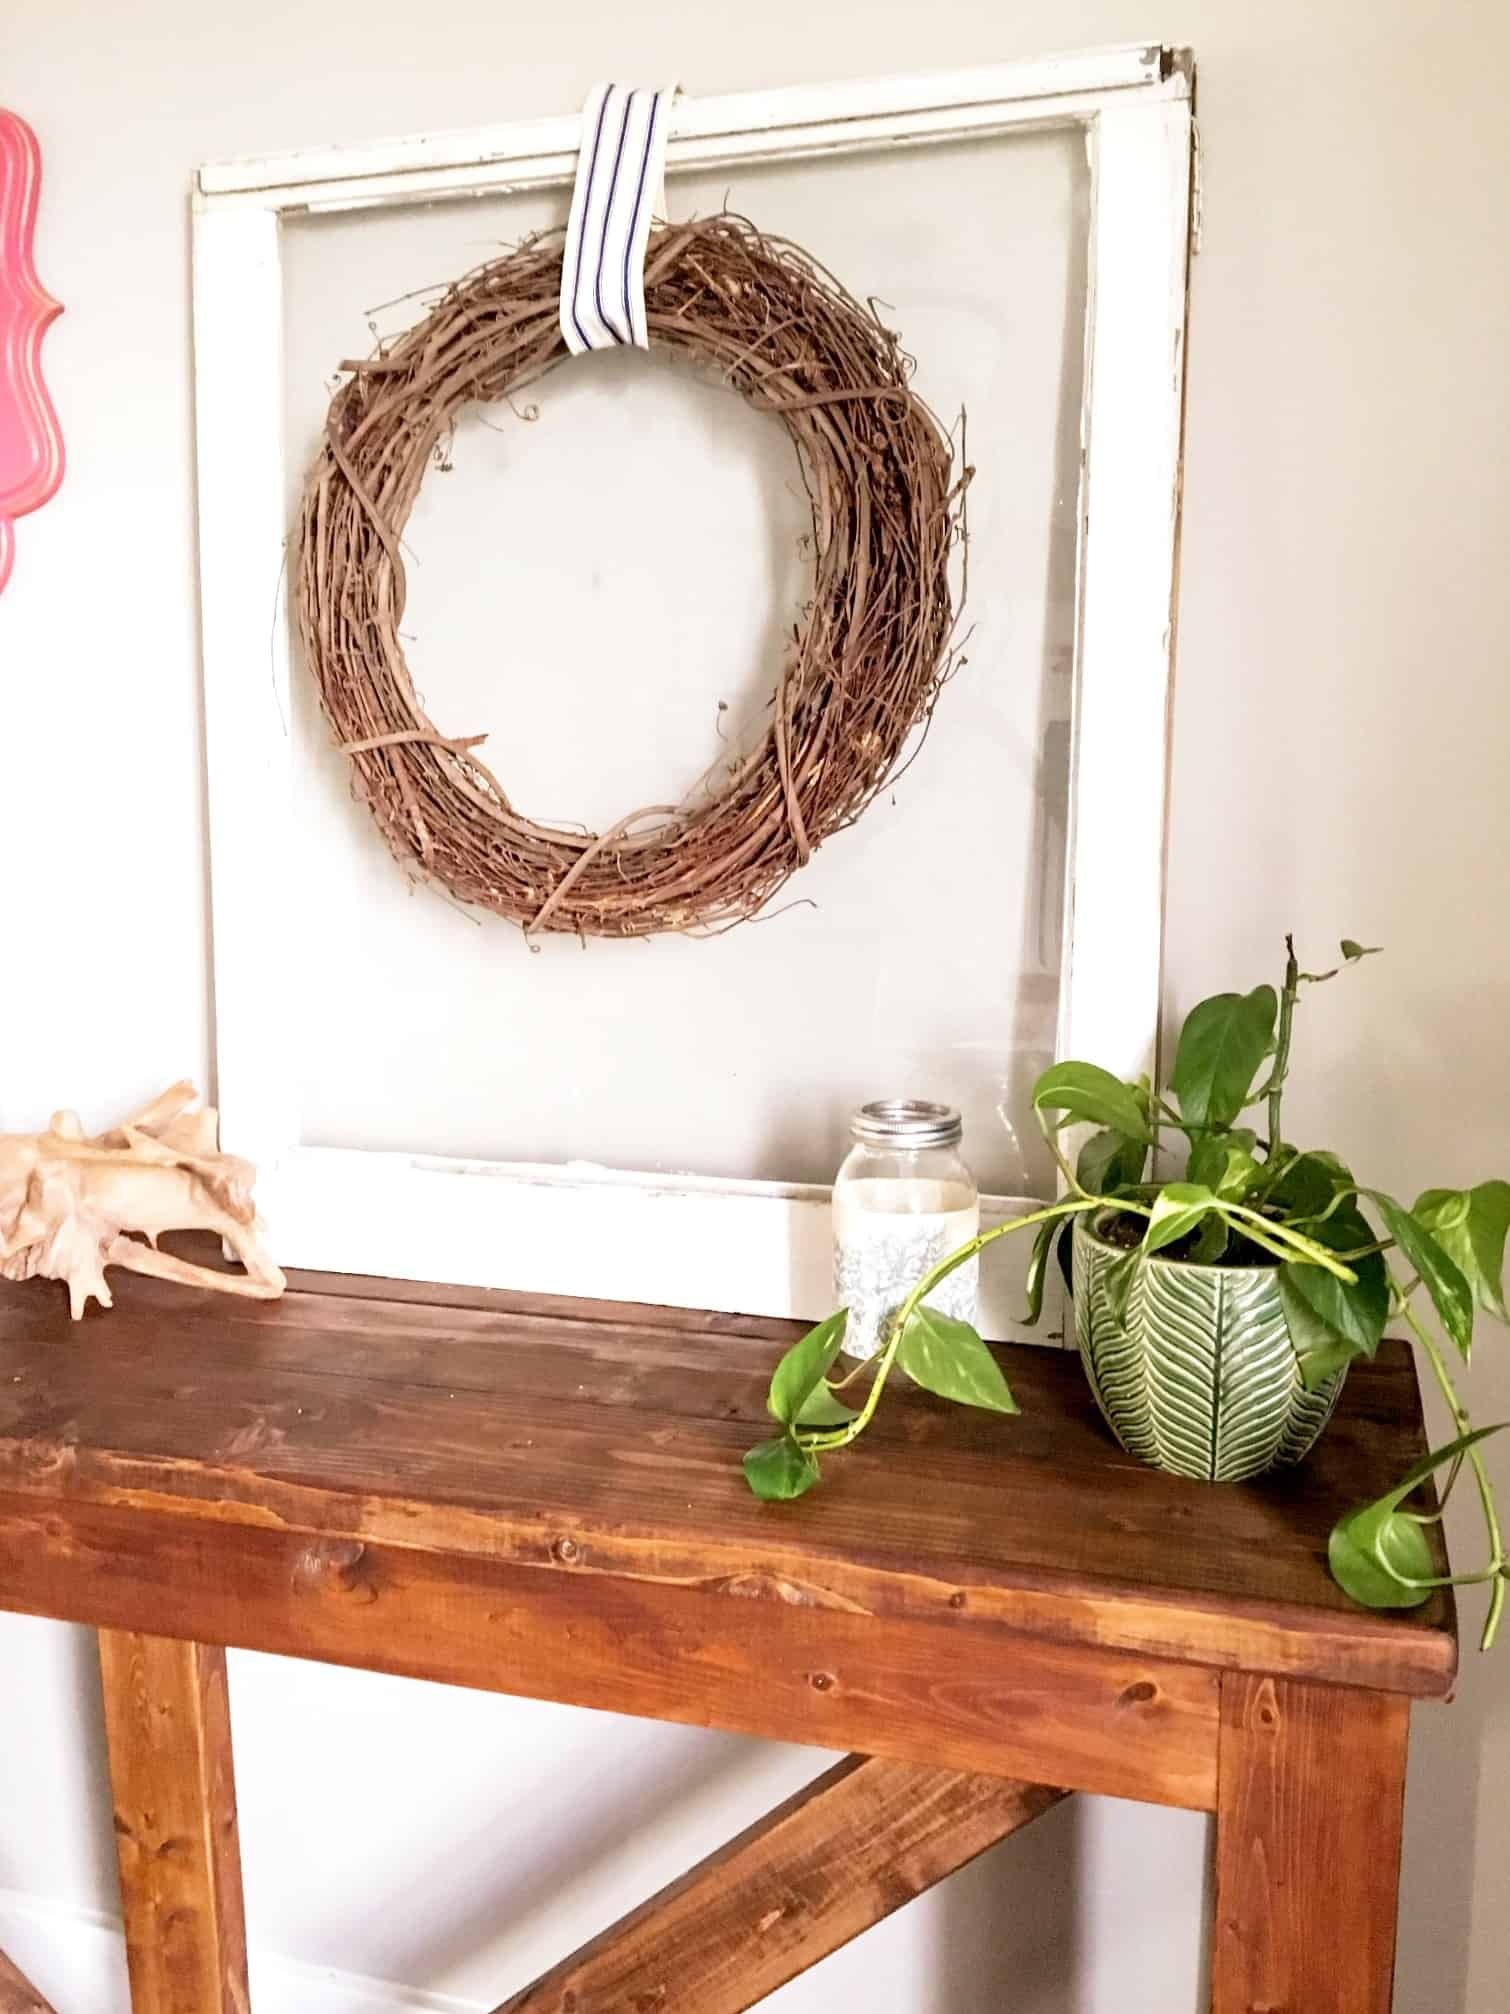 Diy console table out of 2x4s a turtles life for me